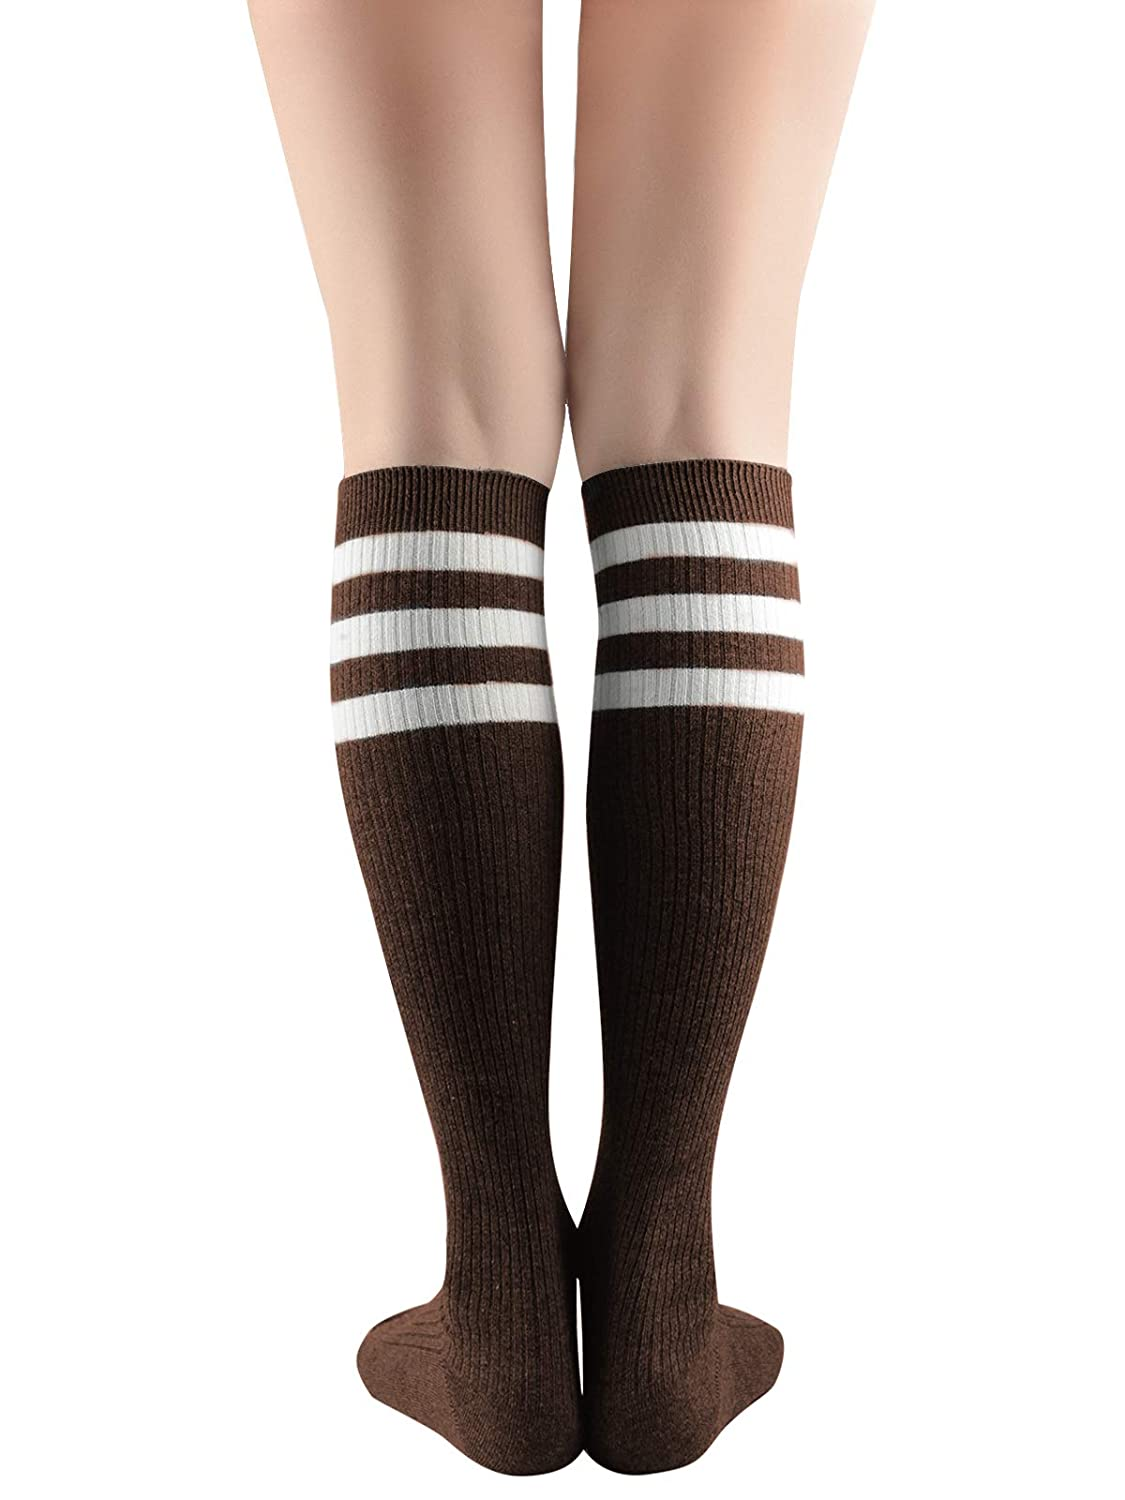 5dcb4c6c1 Zando Women Cute Cotton Triple Striped Knee High Tube Socks Casual Boot  Socks 1 Pair Black Red White One Size at Amazon Women s Clothing store